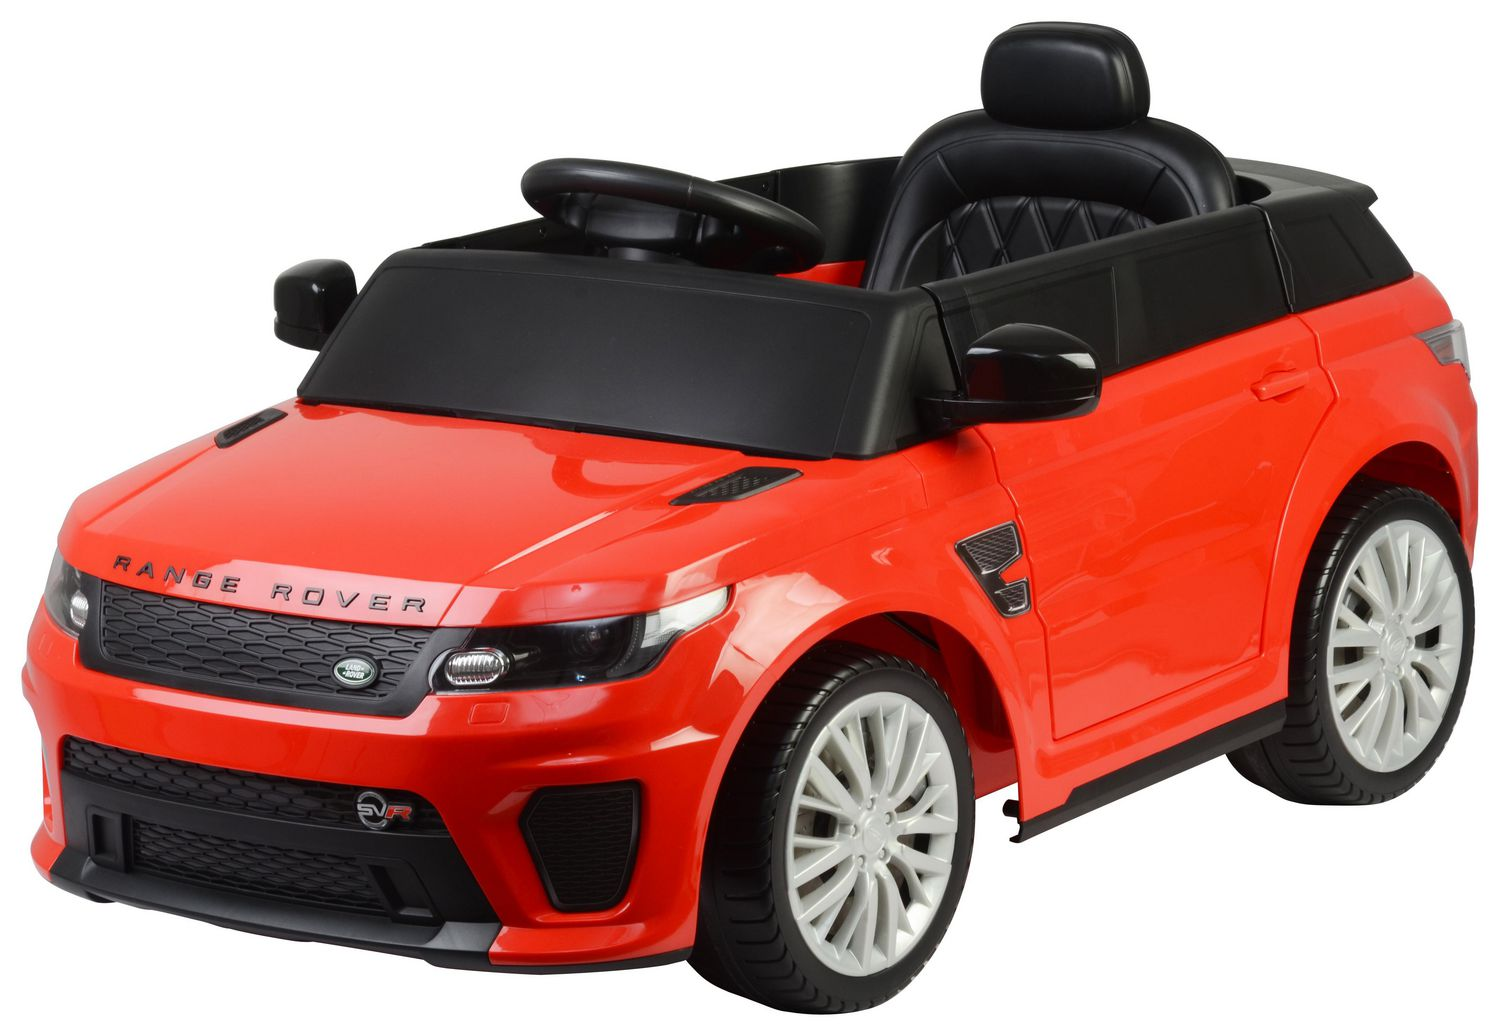 Kool Karz Land Rover Range Rover Svr Electric Ride On Toy Car Red Walmart Canada